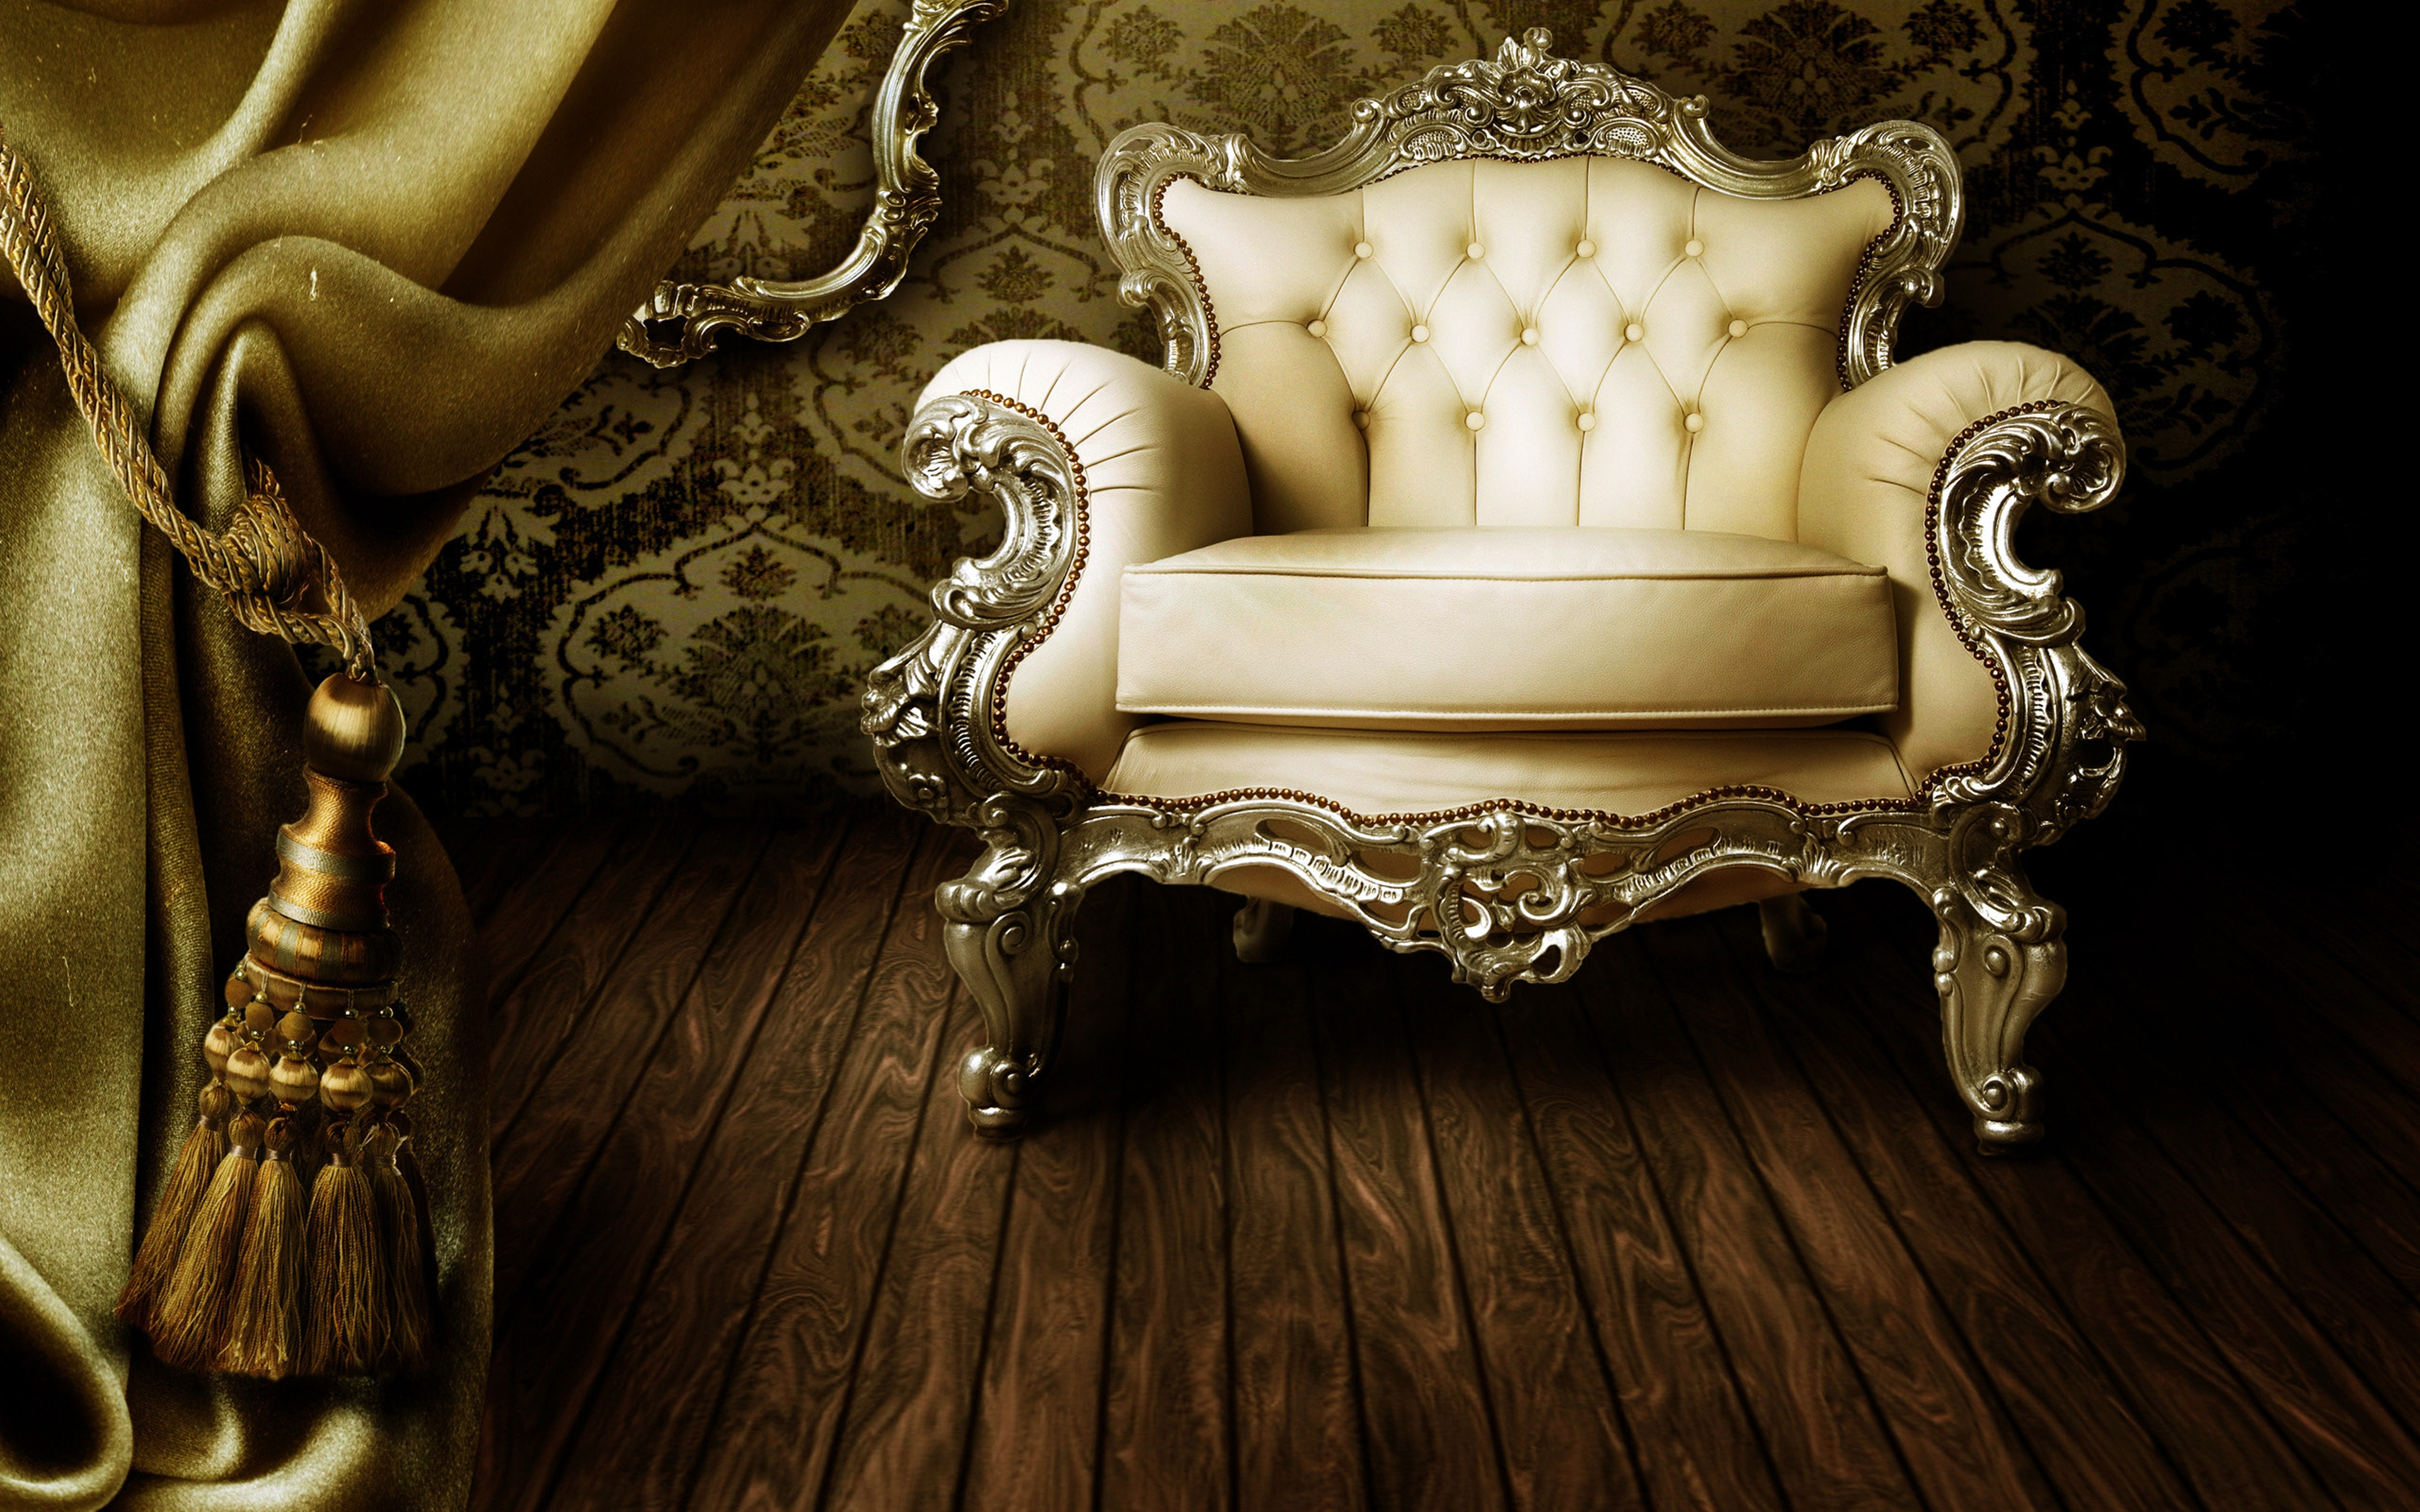 chair images hd best to use after back surgery luxury 4k ultra wallpaper background image 3840x2400